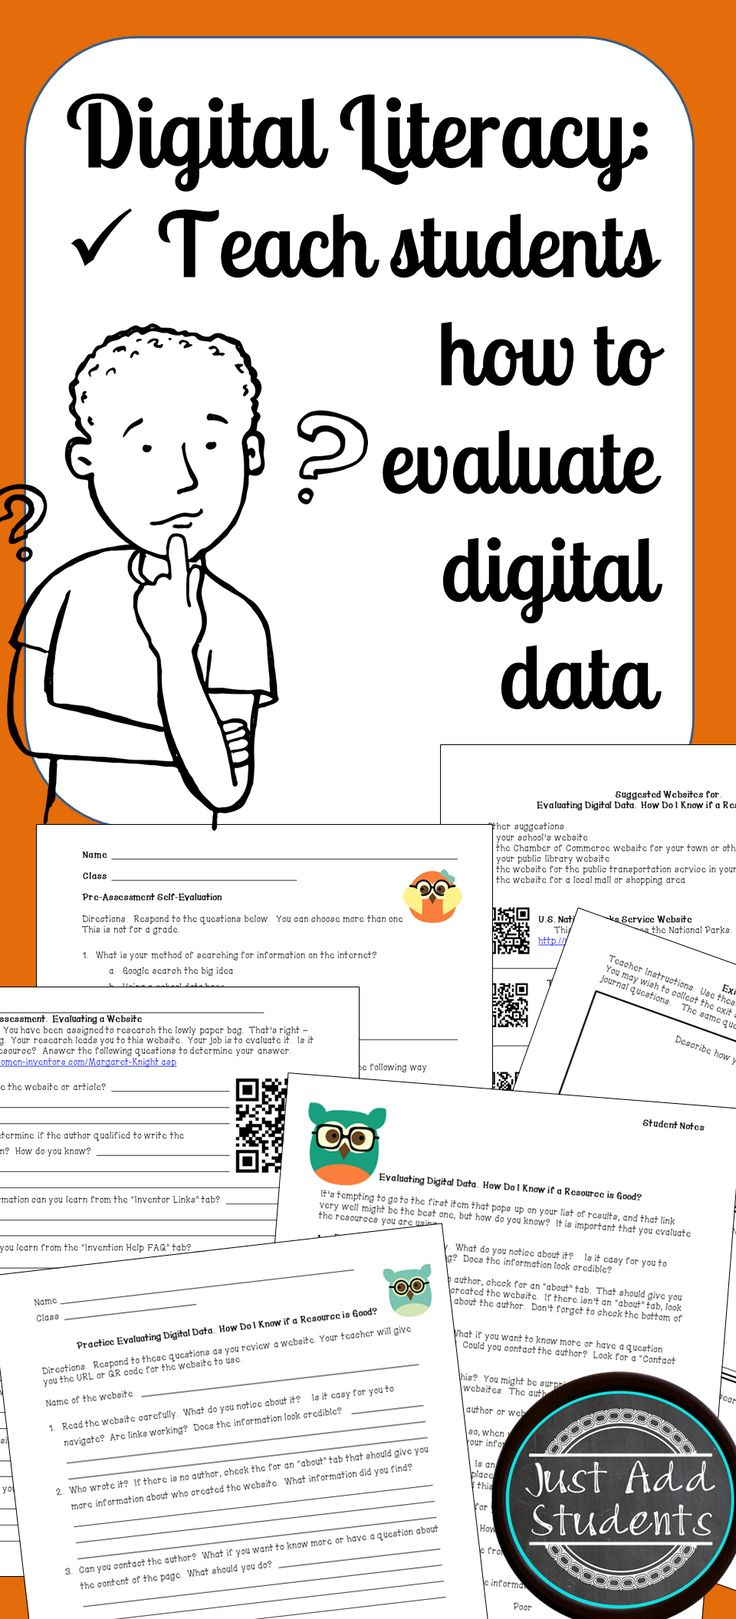 If it's online, it must be true!? Teach students how to determine if an online resource is credible.  QR codes & websites provided extra practice.  Great for paired activity, centers, independent study, or whole-class instruction.